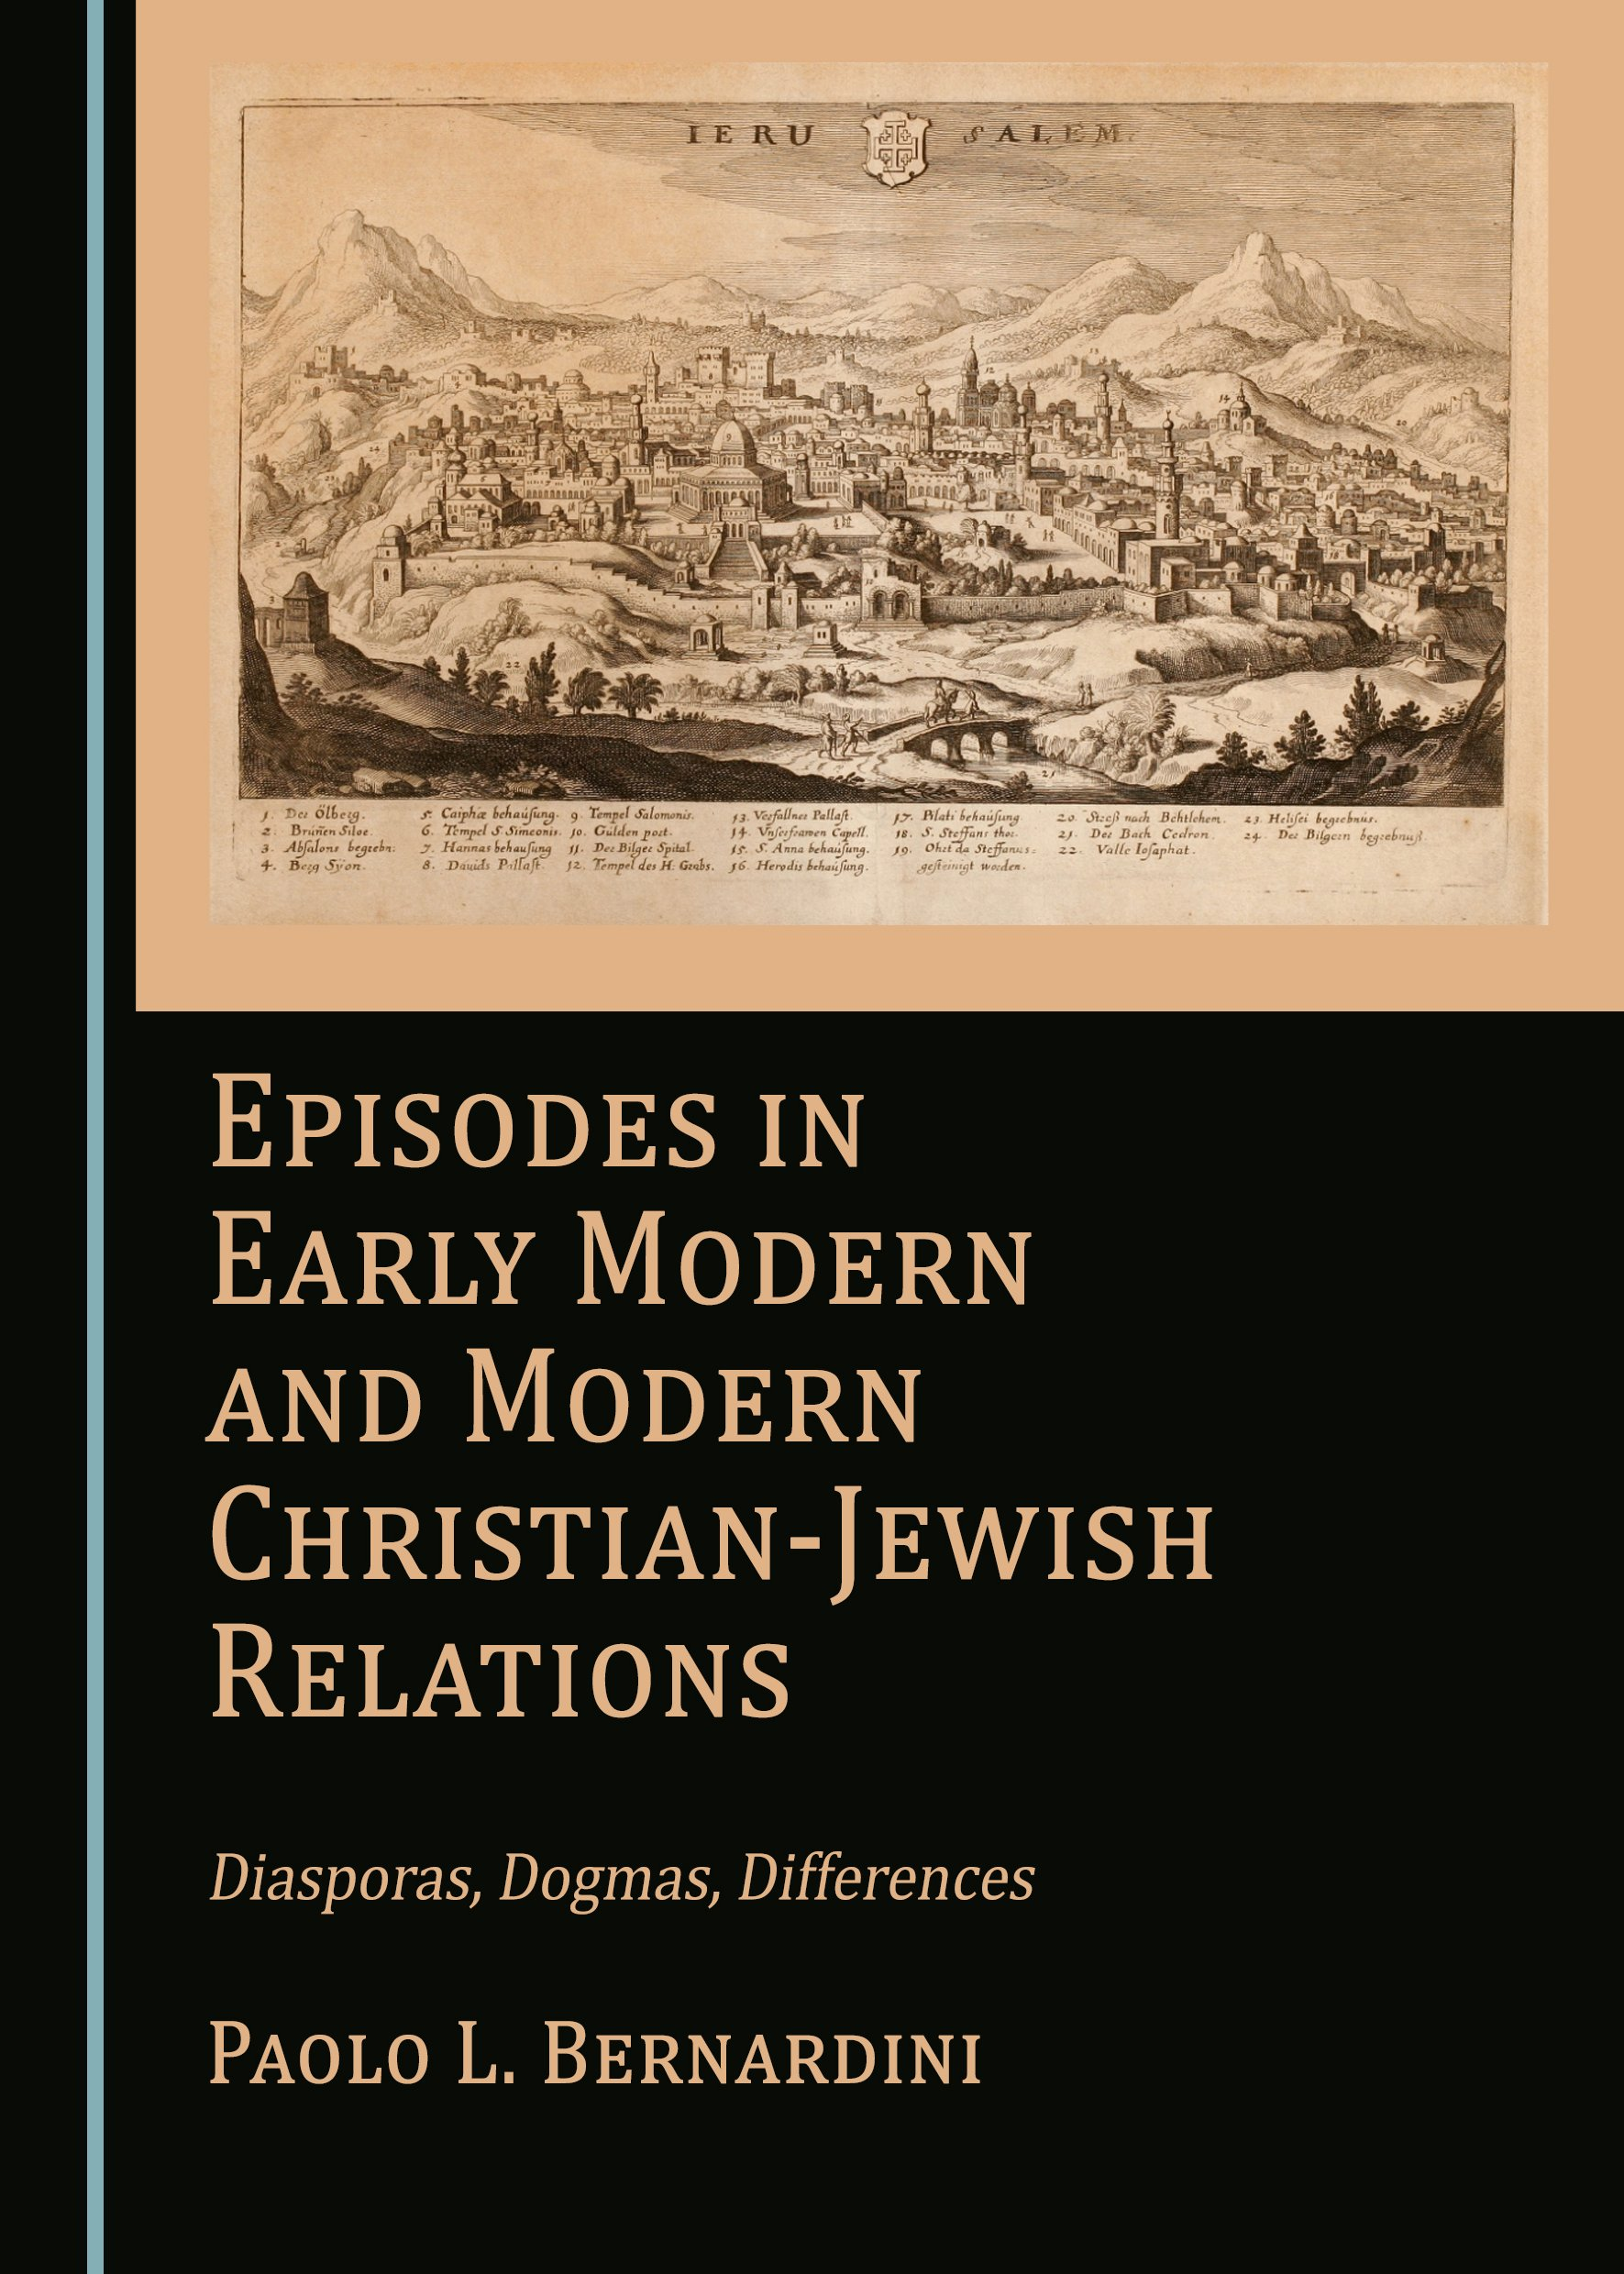 Episodes in Early Modern and Modern Christian-Jewish Relations: Diasporas, Dogmas, Differences